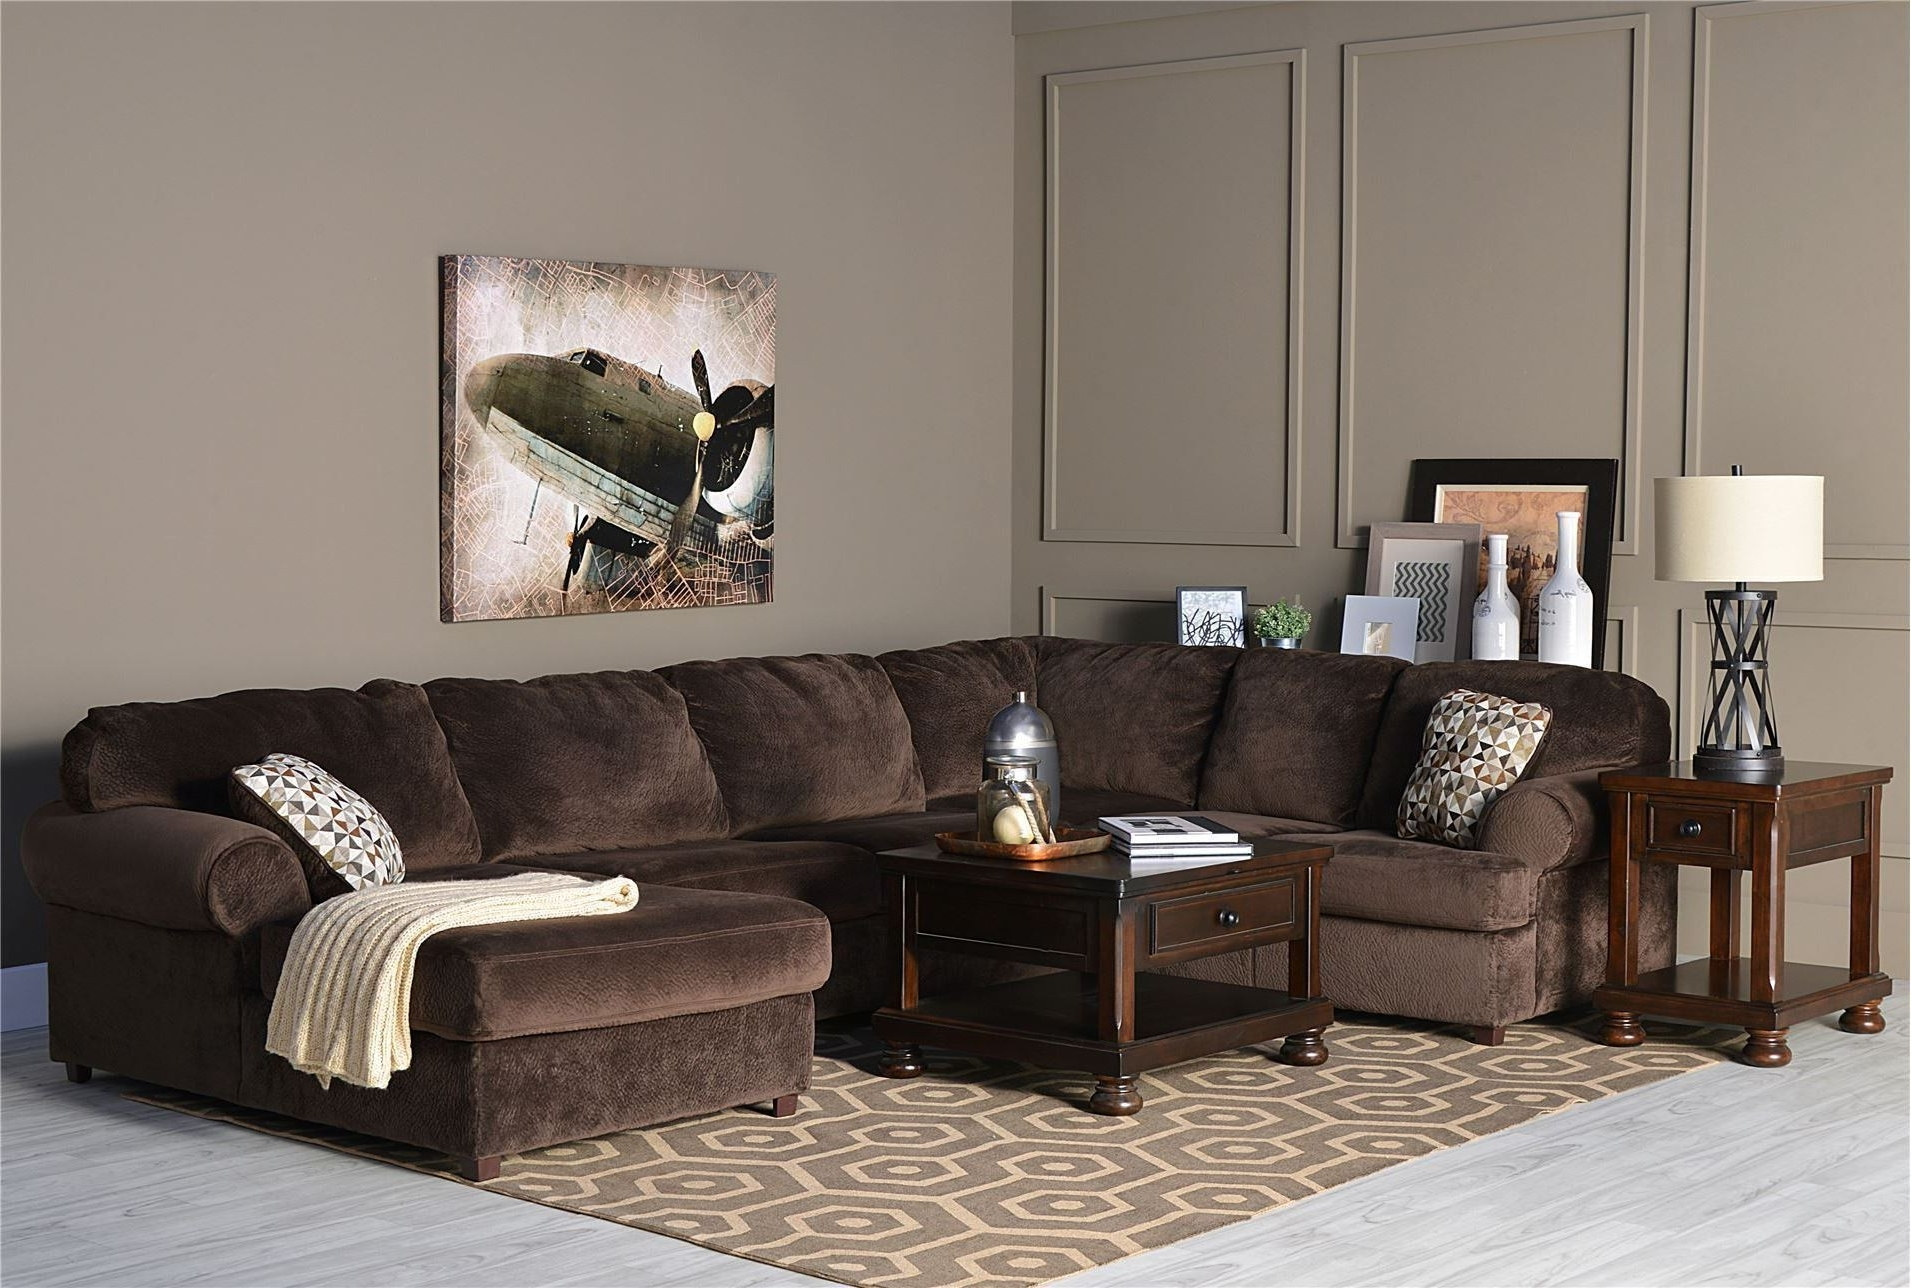 Well Liked Sofa: 3 Piece Sectional Sofa. Small Couch With Chaise (View 14 of 15)